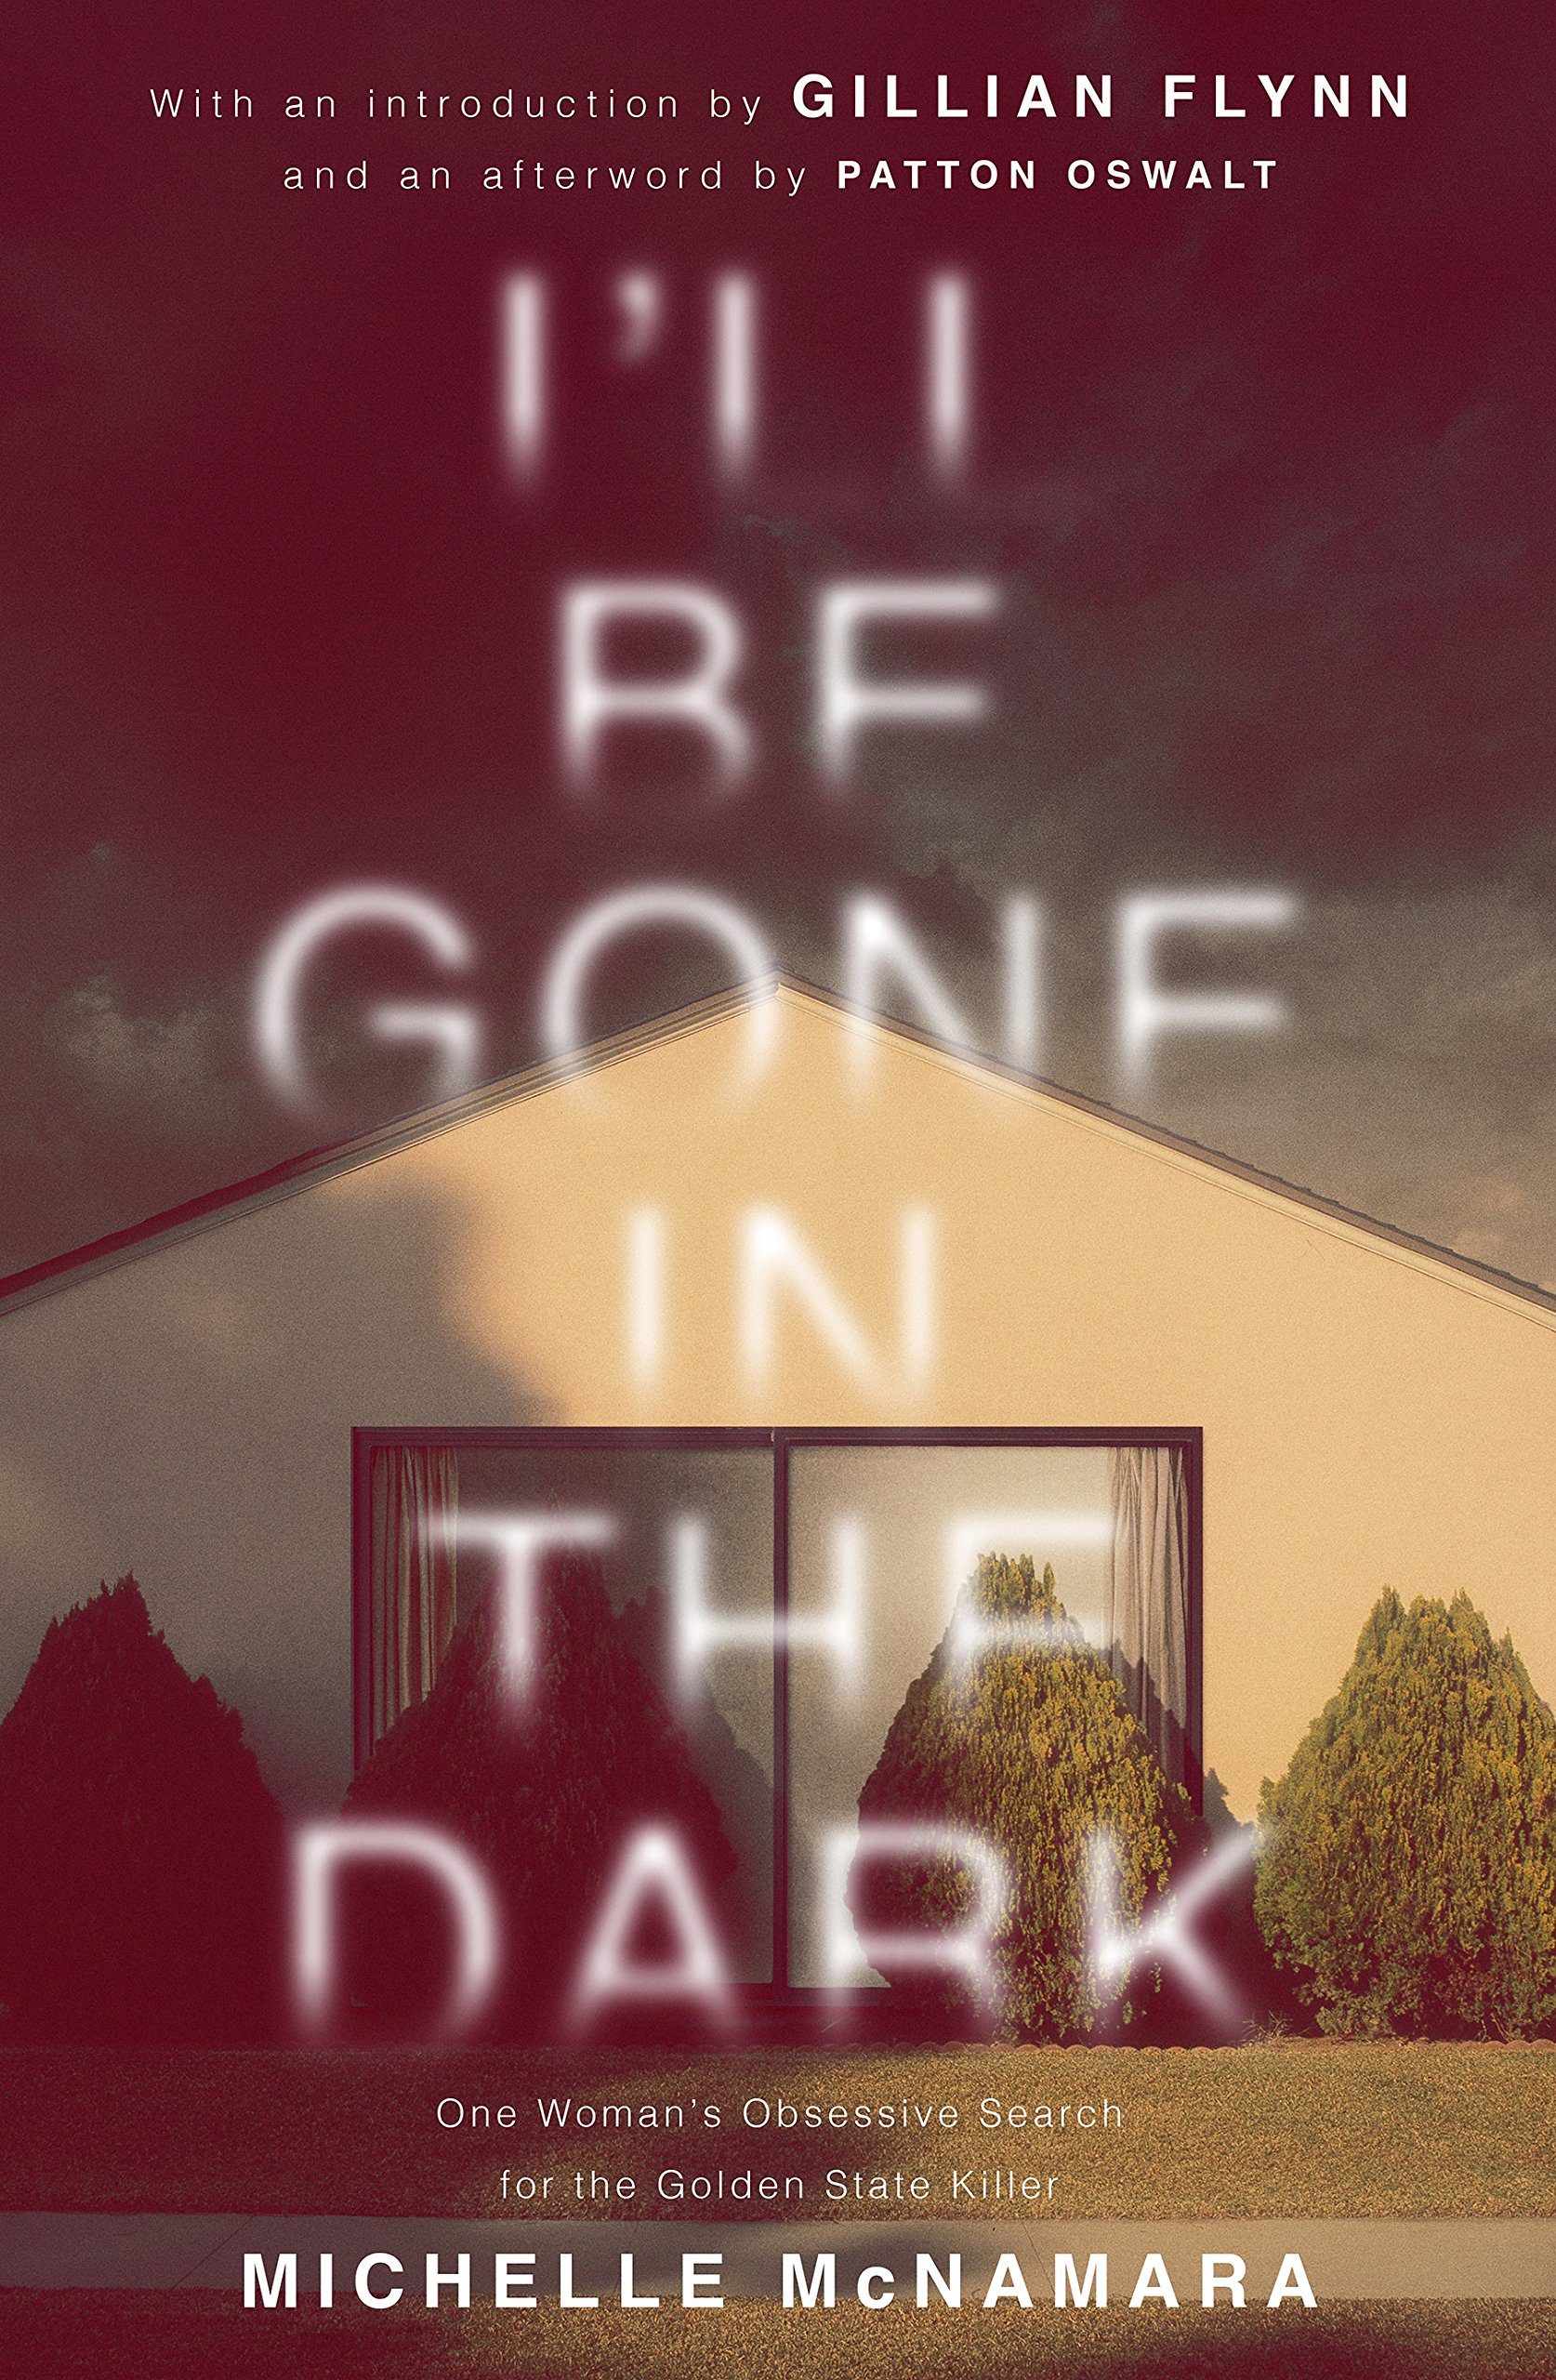 I'll Be Gone in the Dark: Amazon.co.uk: McNamara, Michelle, Oswalt, Patton,  Flynn, Gillian: 9780571345144: Books